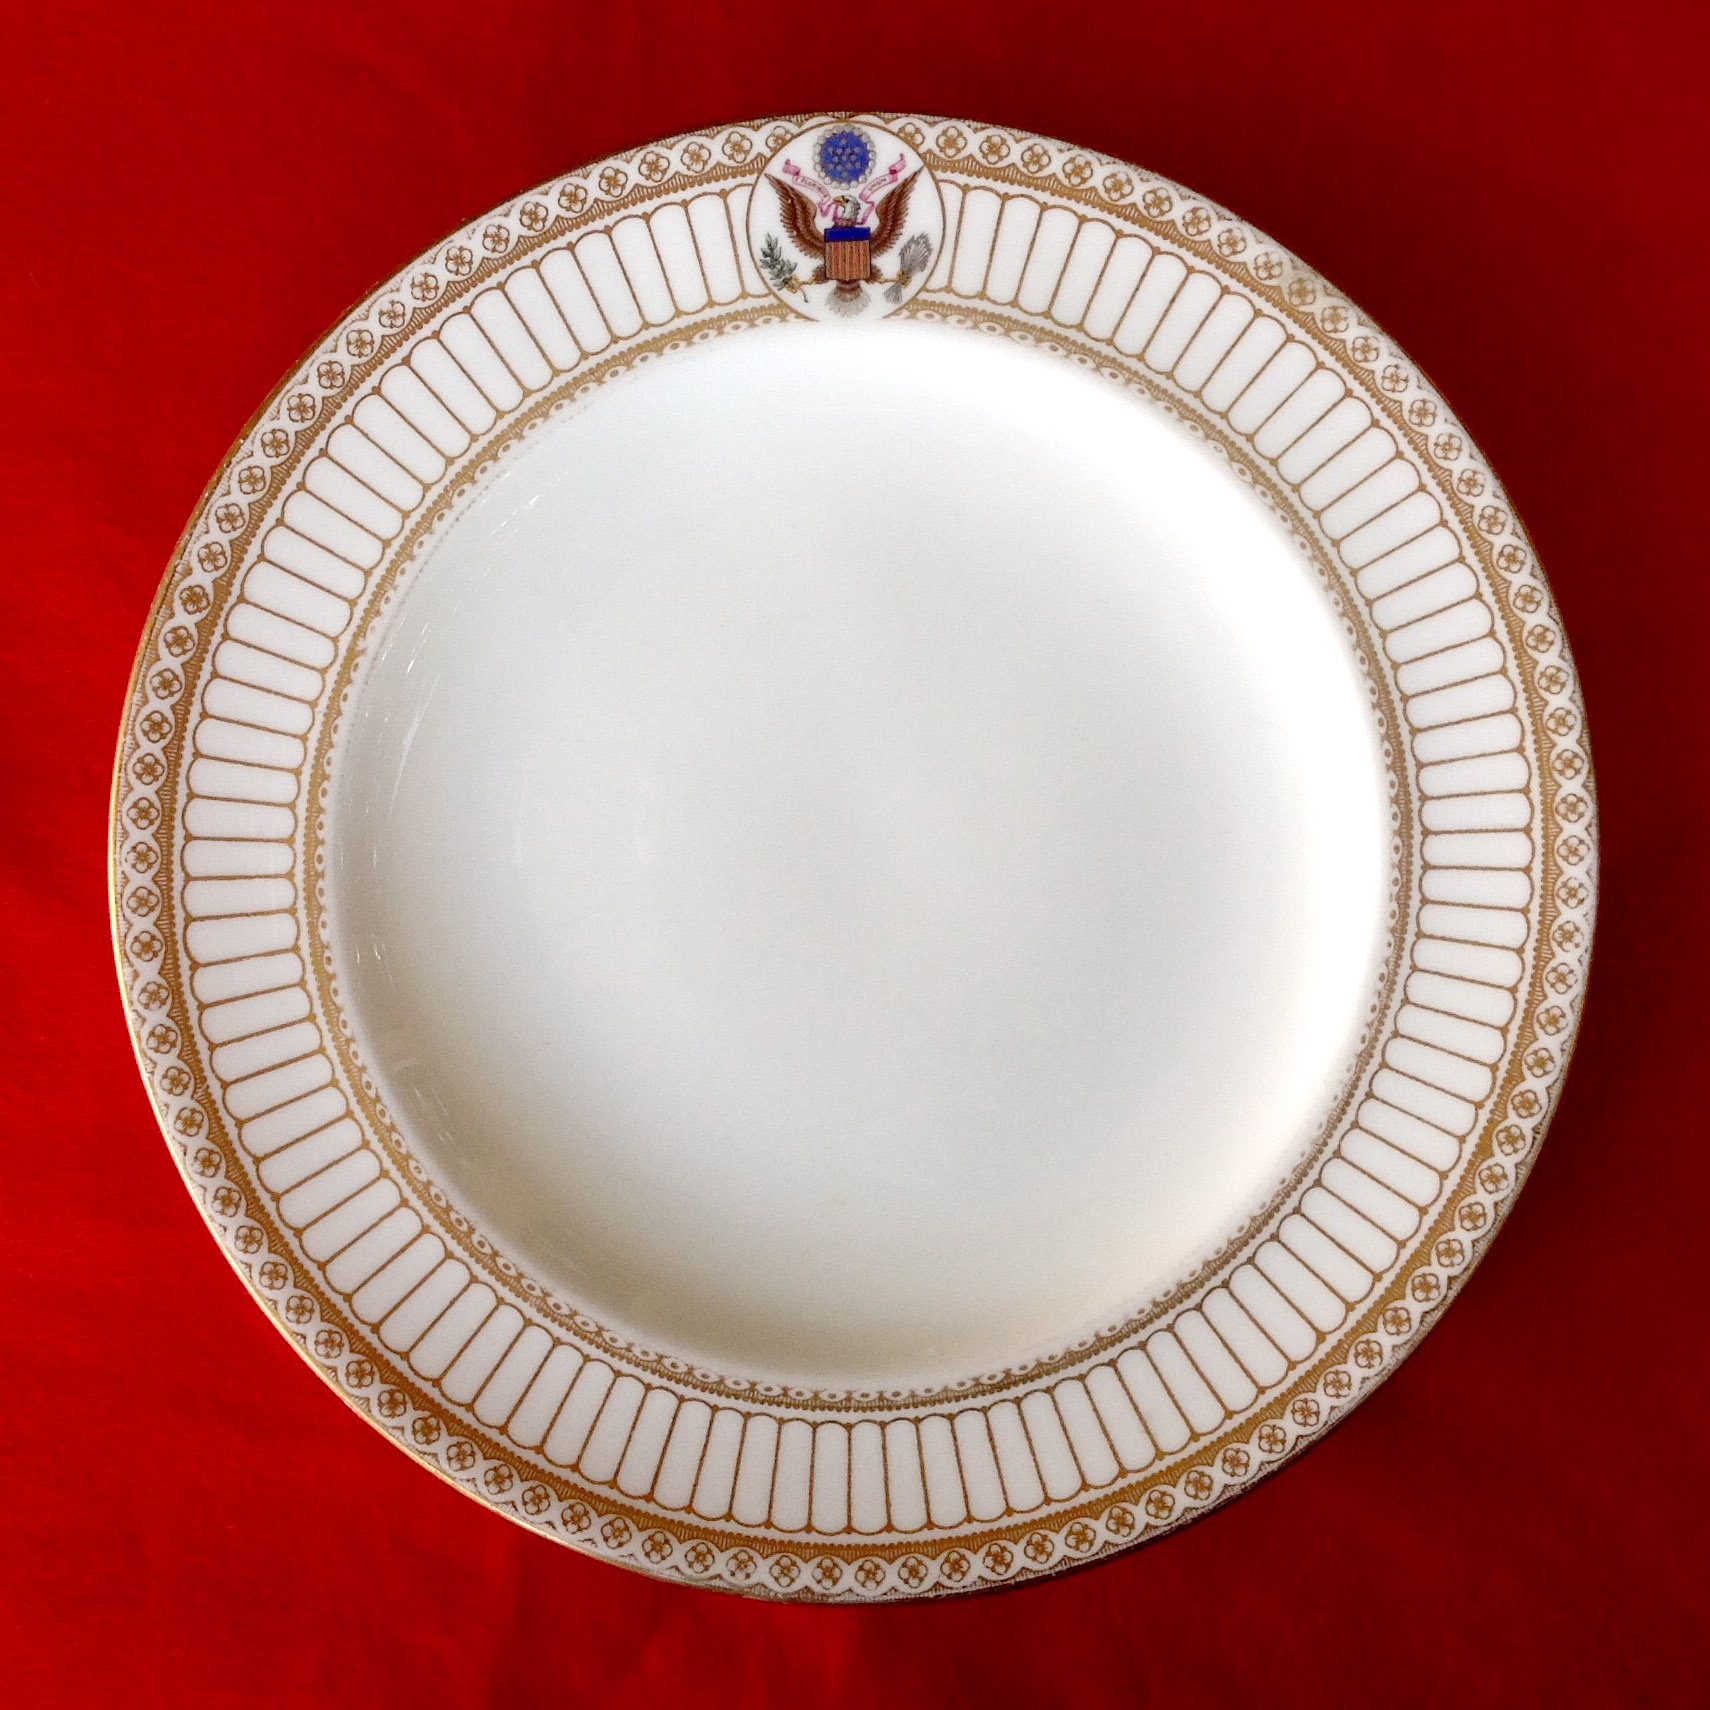 teddy theodore-roosevelt-white-house-china-fish-plate.jpg